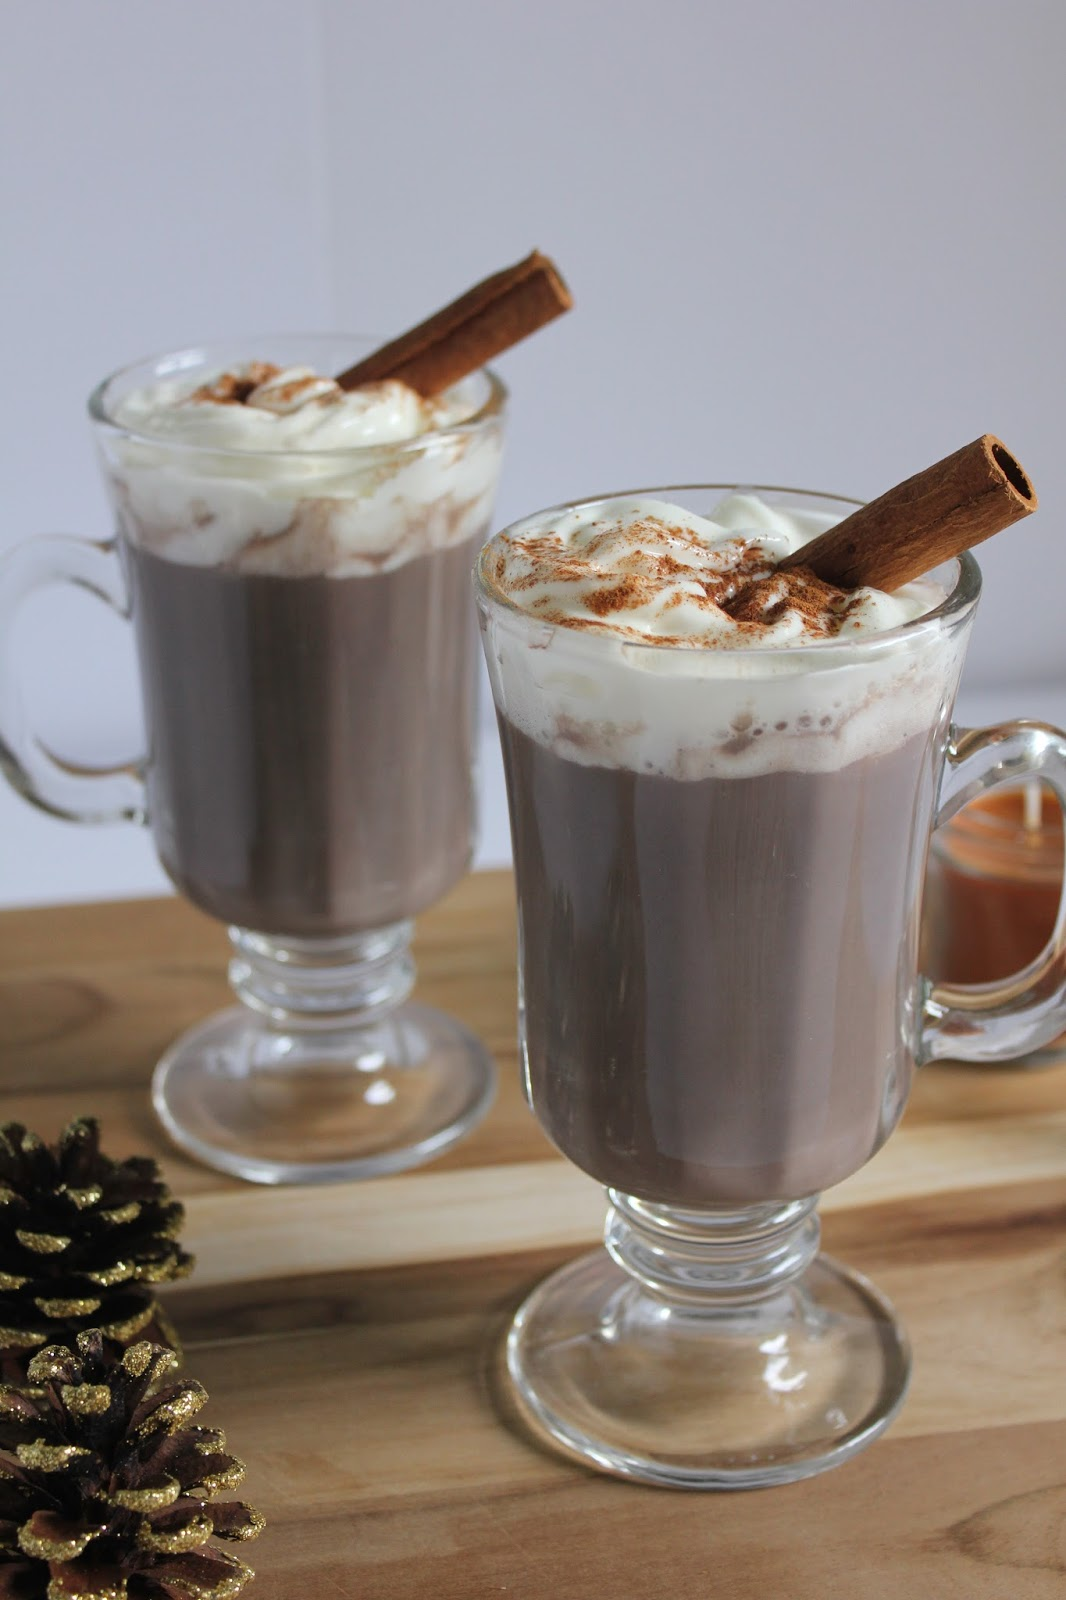 Neutral2Neon.com Holiday Cookbook - Thanksgiving Drink Recipes: Skinny Pumpkin Spice White Hot Chocolate